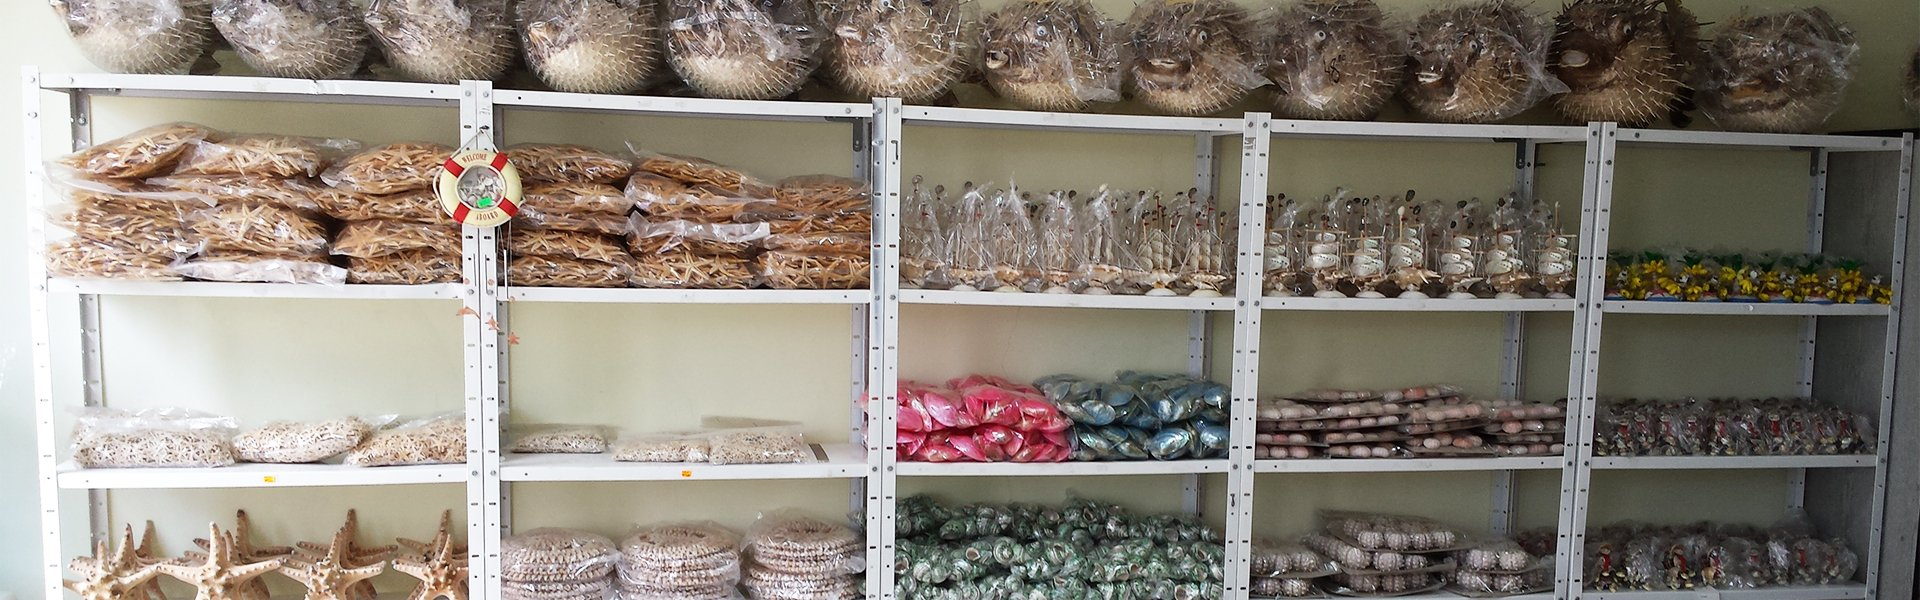 Seashells and maritime souvenirs trade